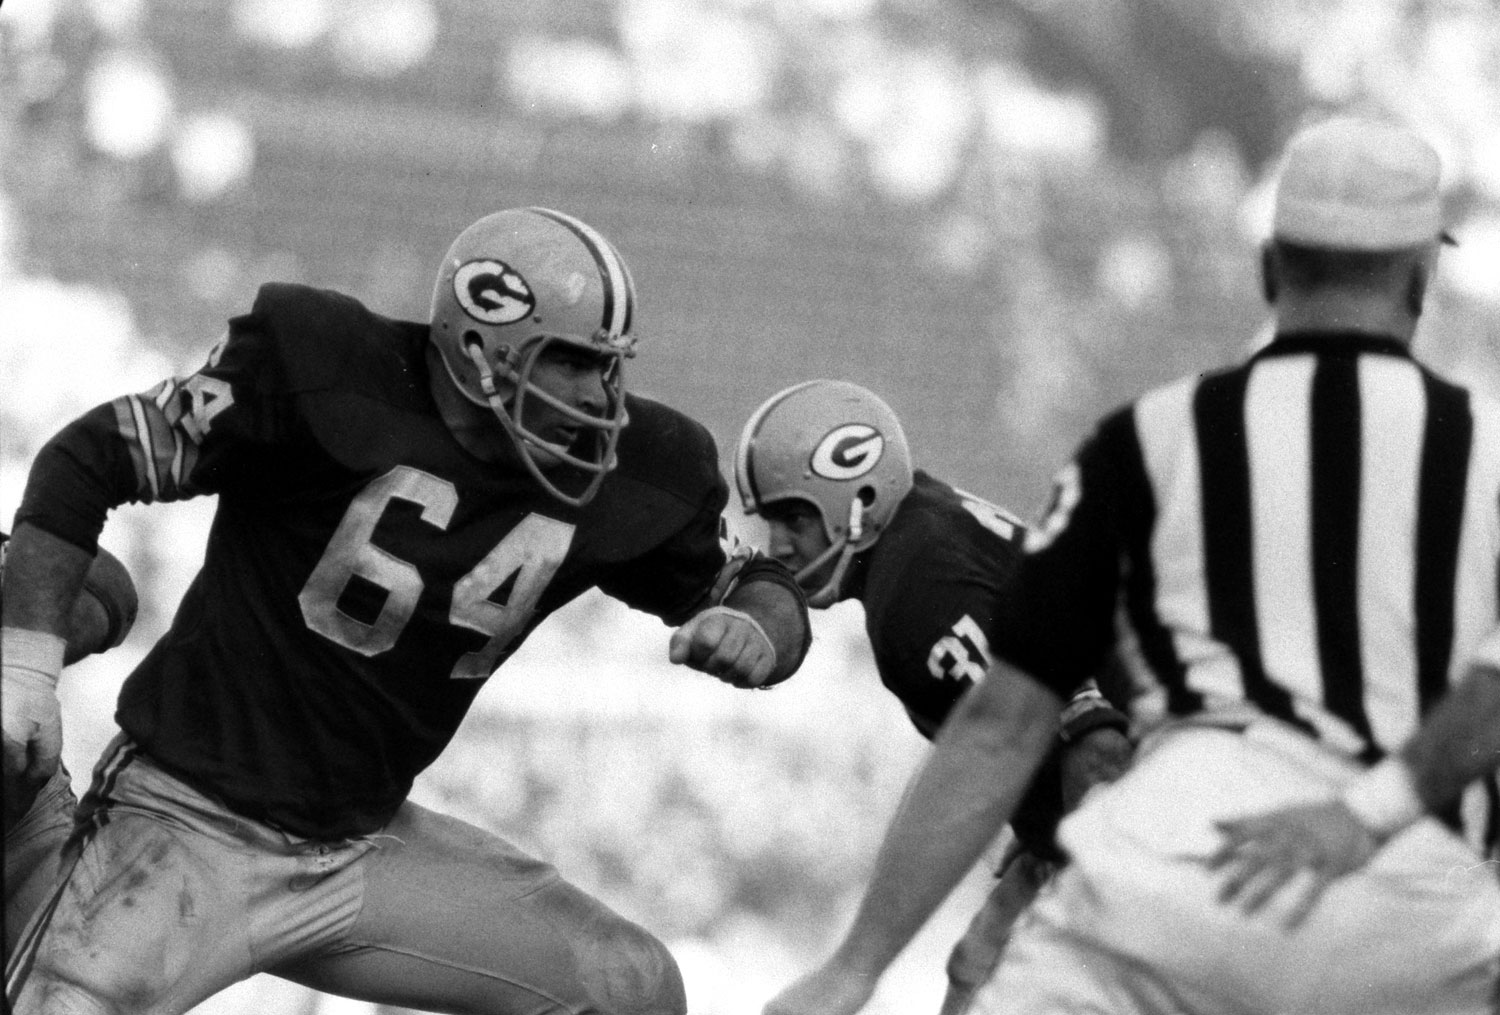 <b>Not published in LIFE.</b> Green Bay's Jerry Kramer - a tremendous offensive lineman who, incredibly (and shamefully), was never inducted into the Pro Football Hall of Fame Ñ in Super Bowl I, 1967.